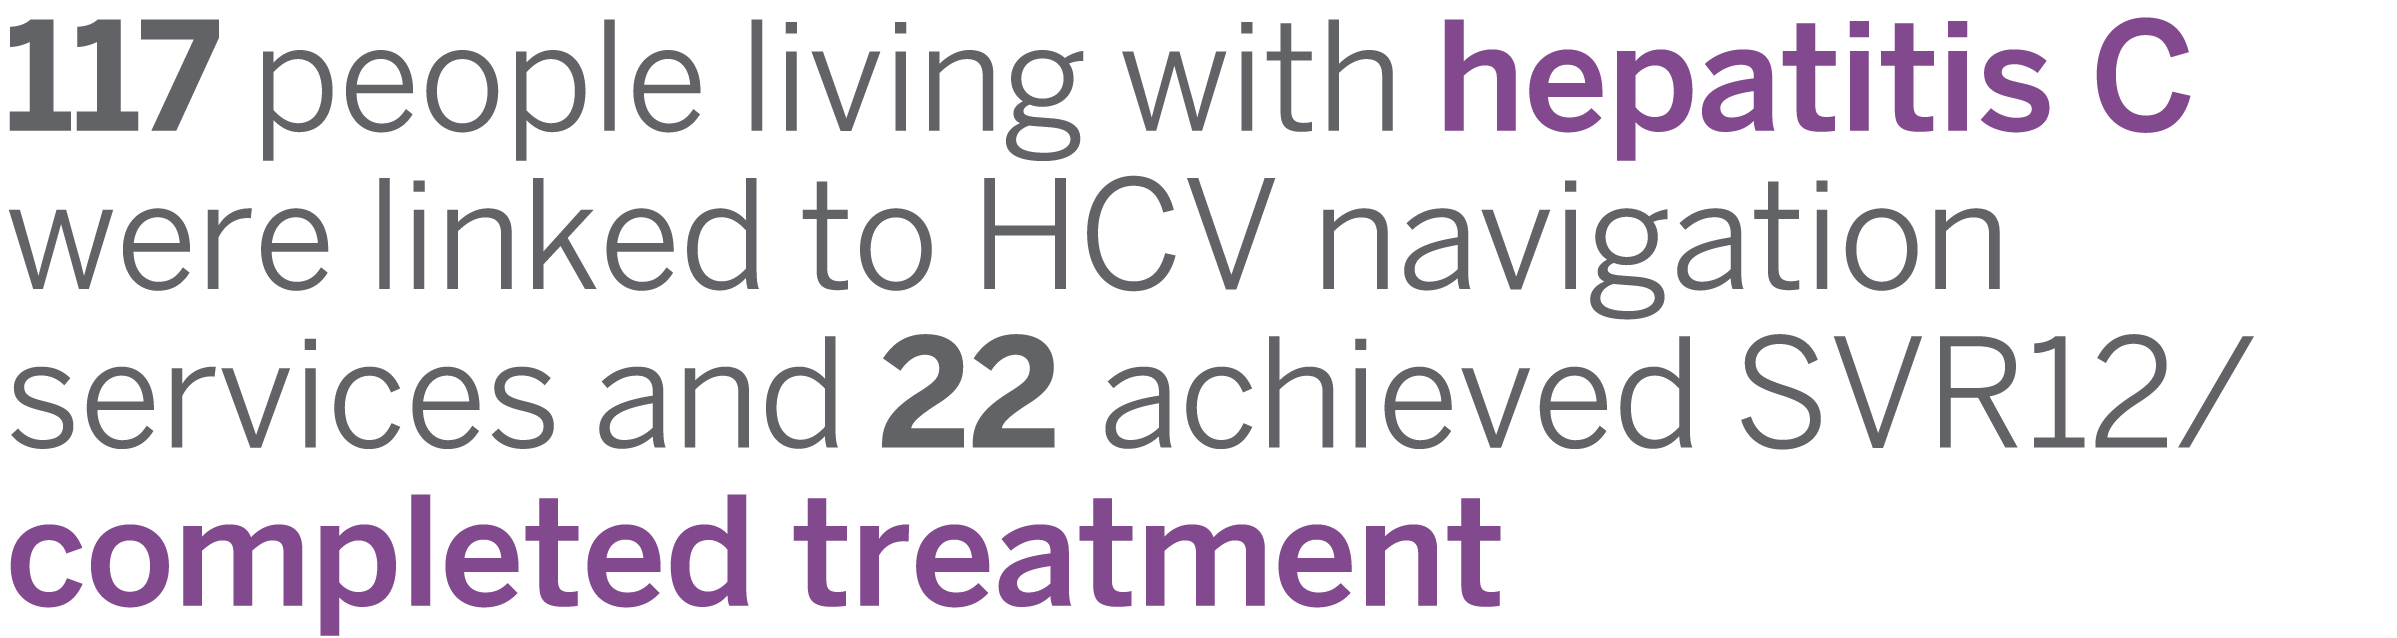 117 people living with hepatitis C were linked to HCV navigation services and 22 achieved SVR12/completed treatment